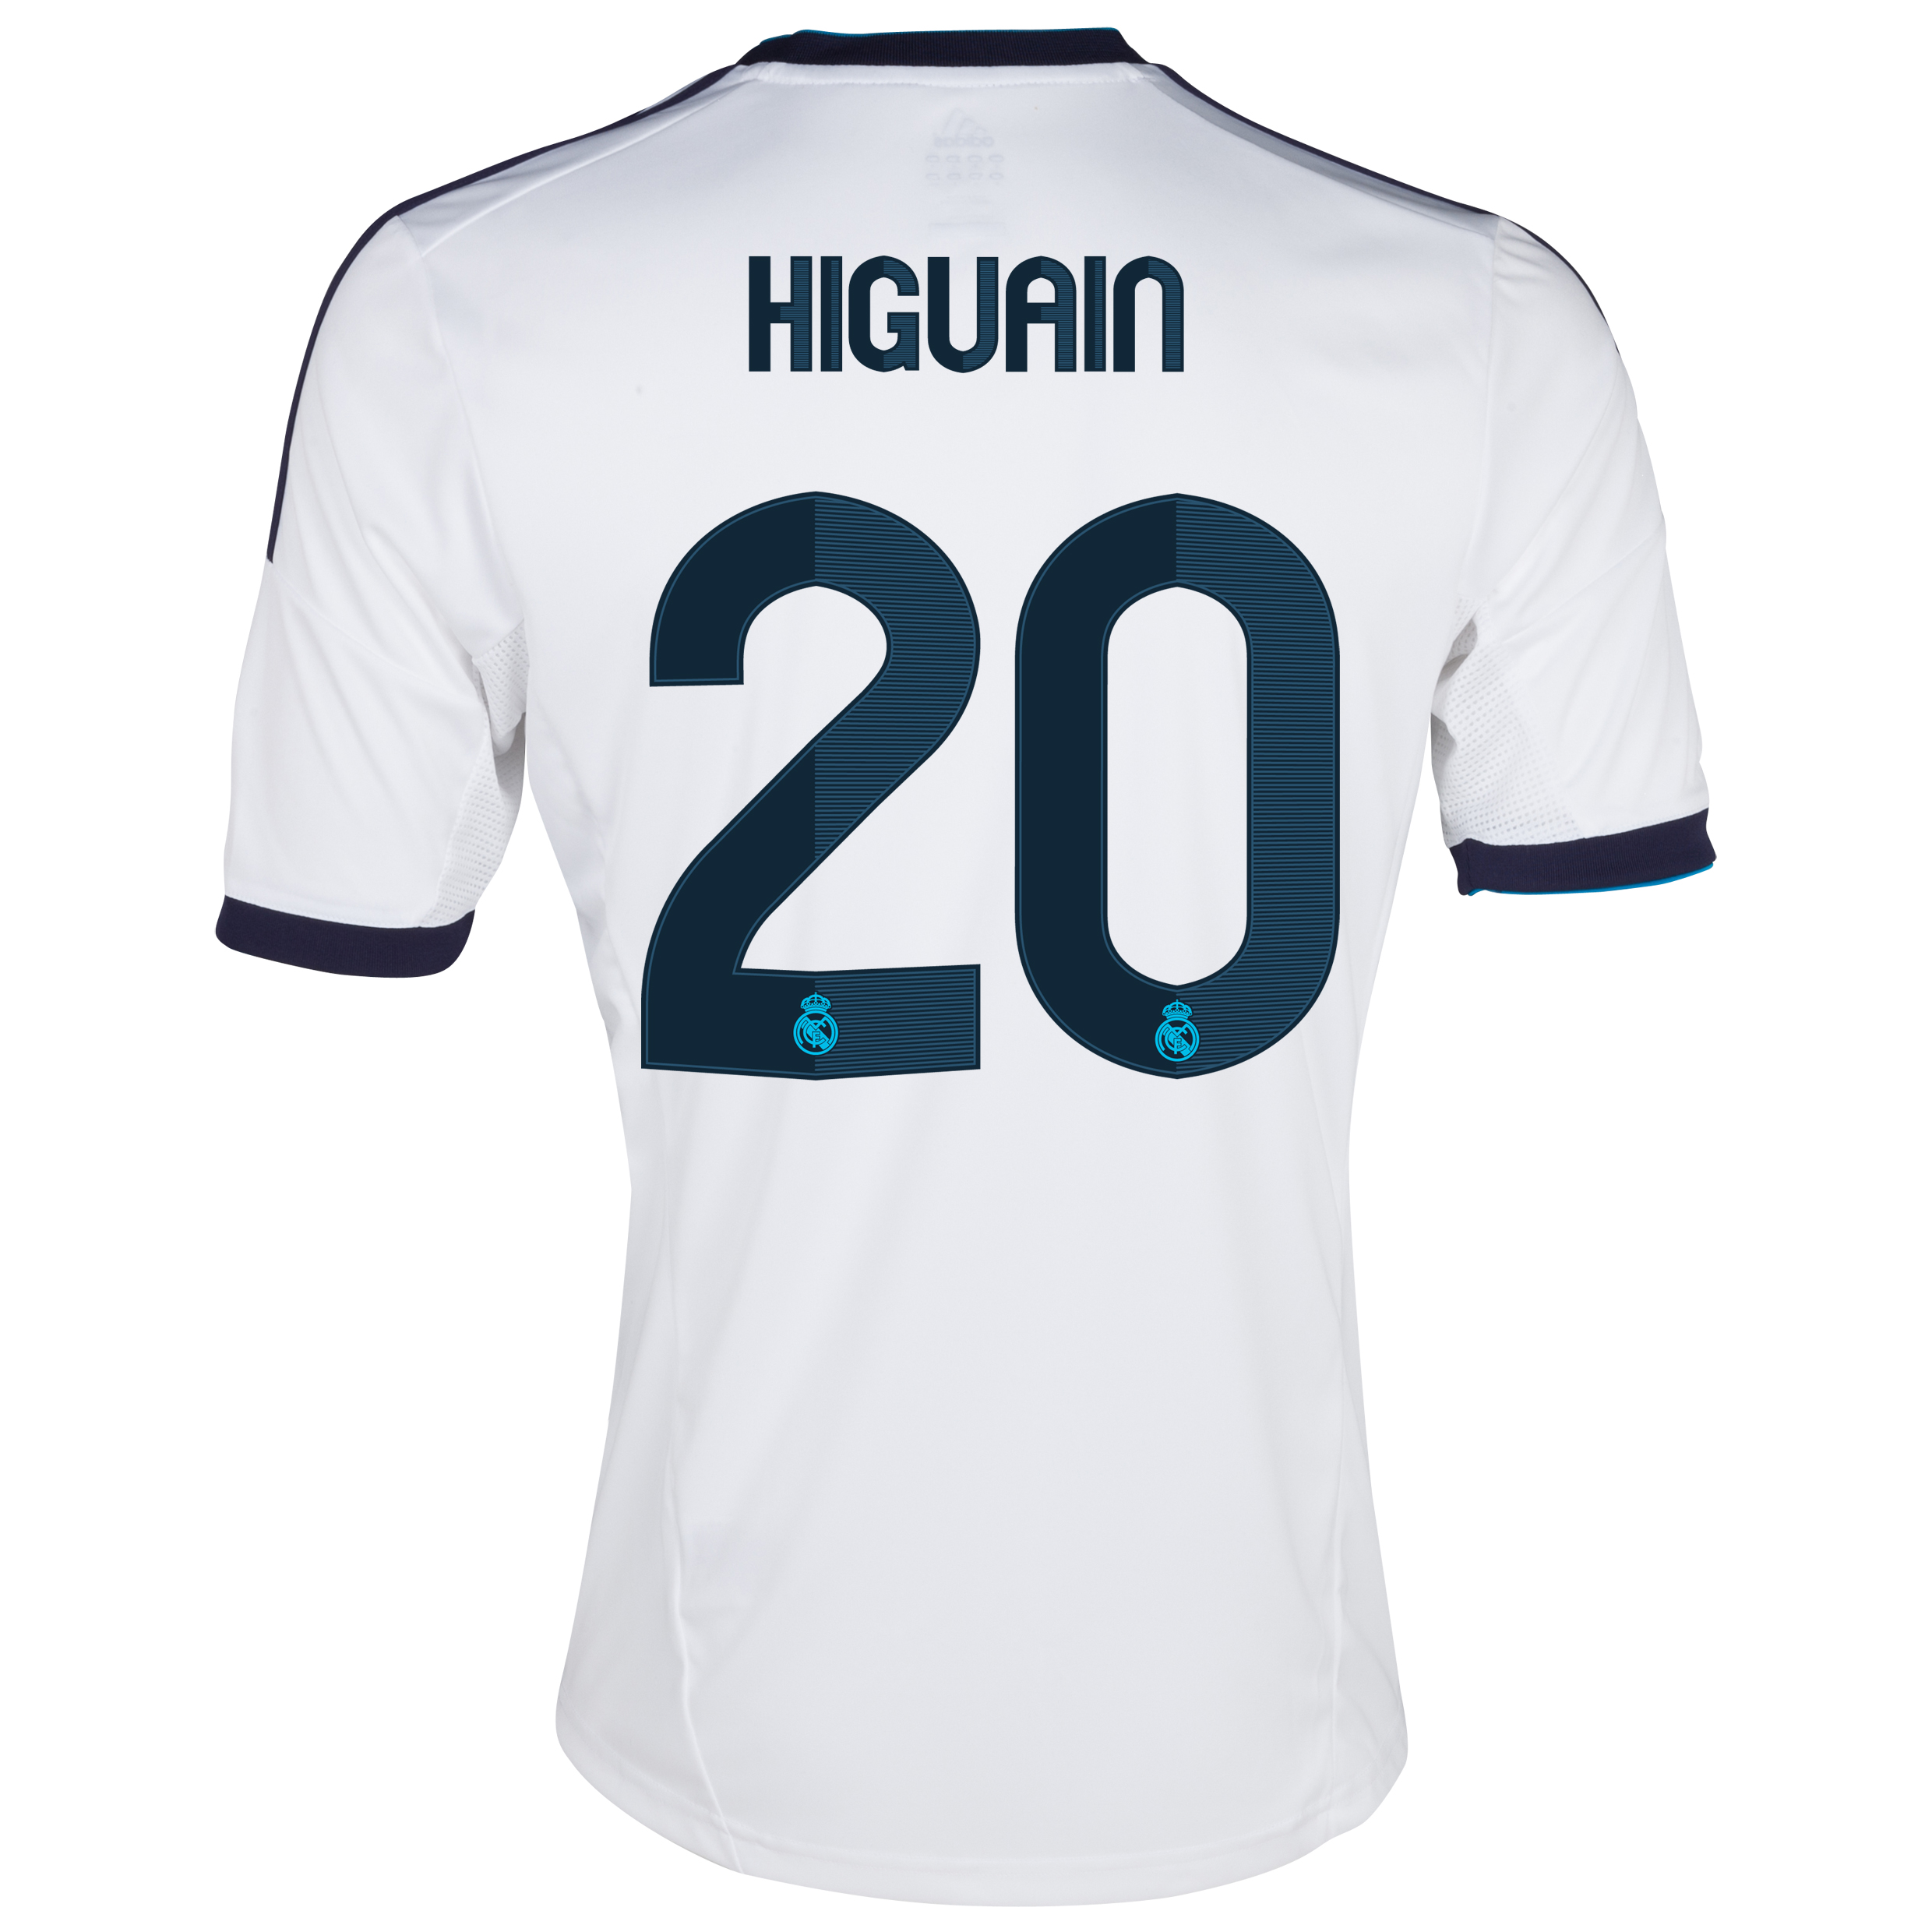 Real Madrid Home Shirt 2012/13 with Higuaín 20 printing